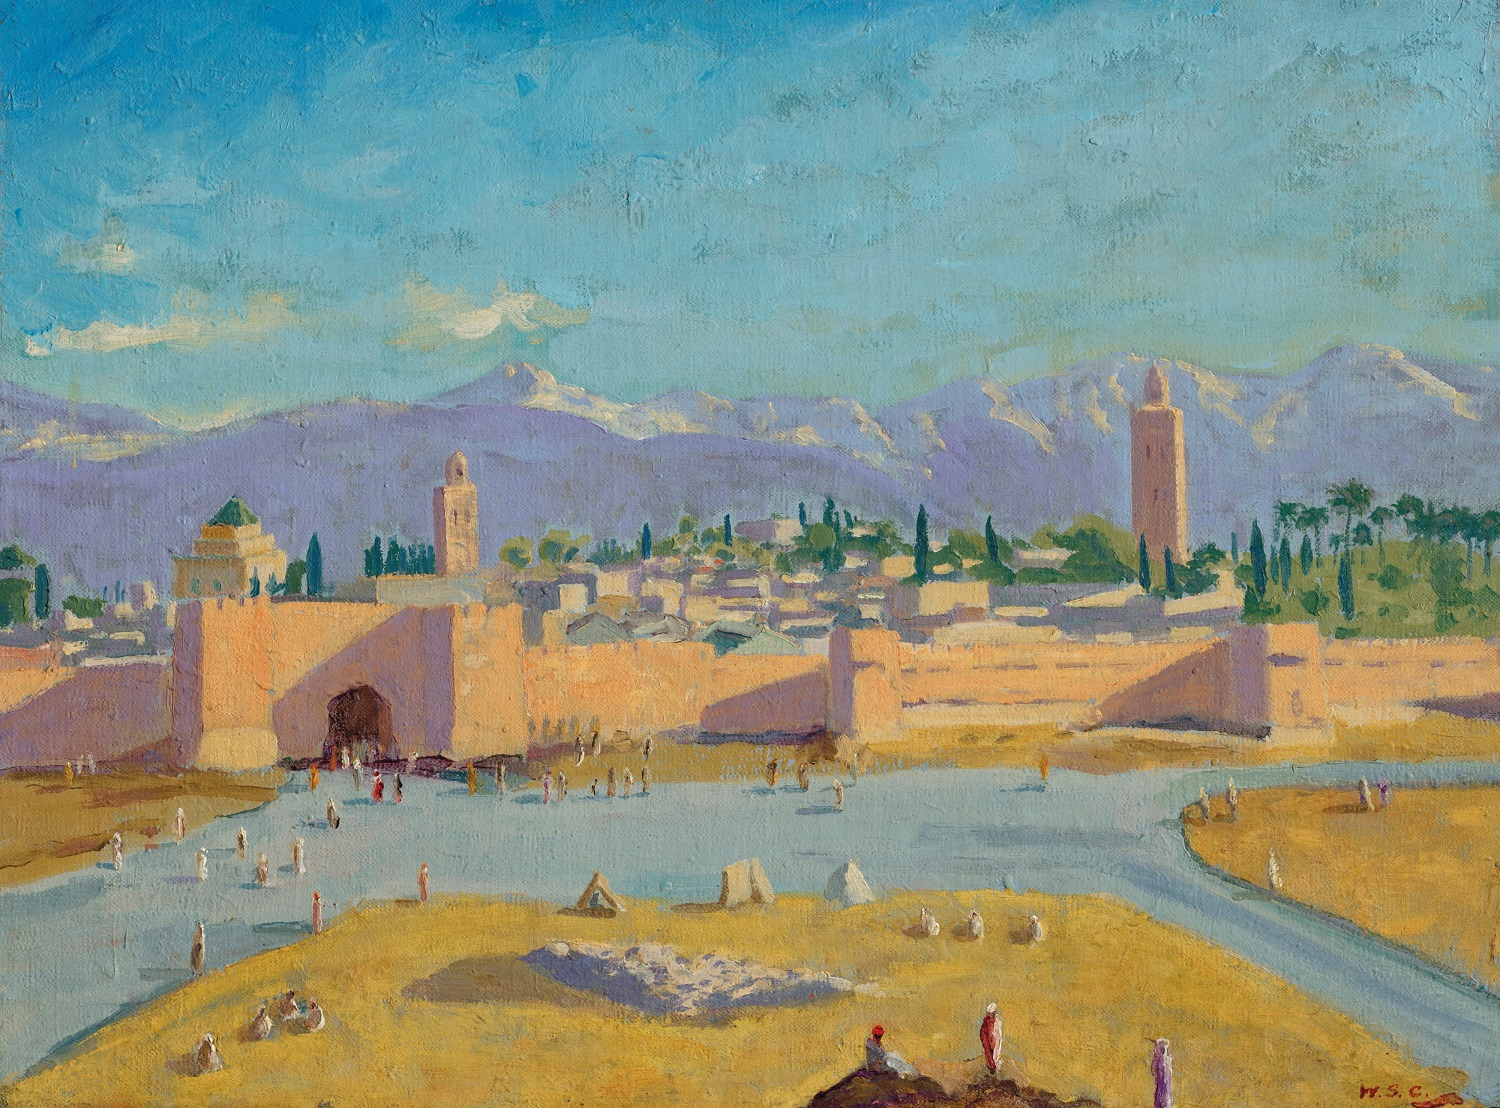 Sir Winston Churchill's Only Wartime Painting To Be Sold